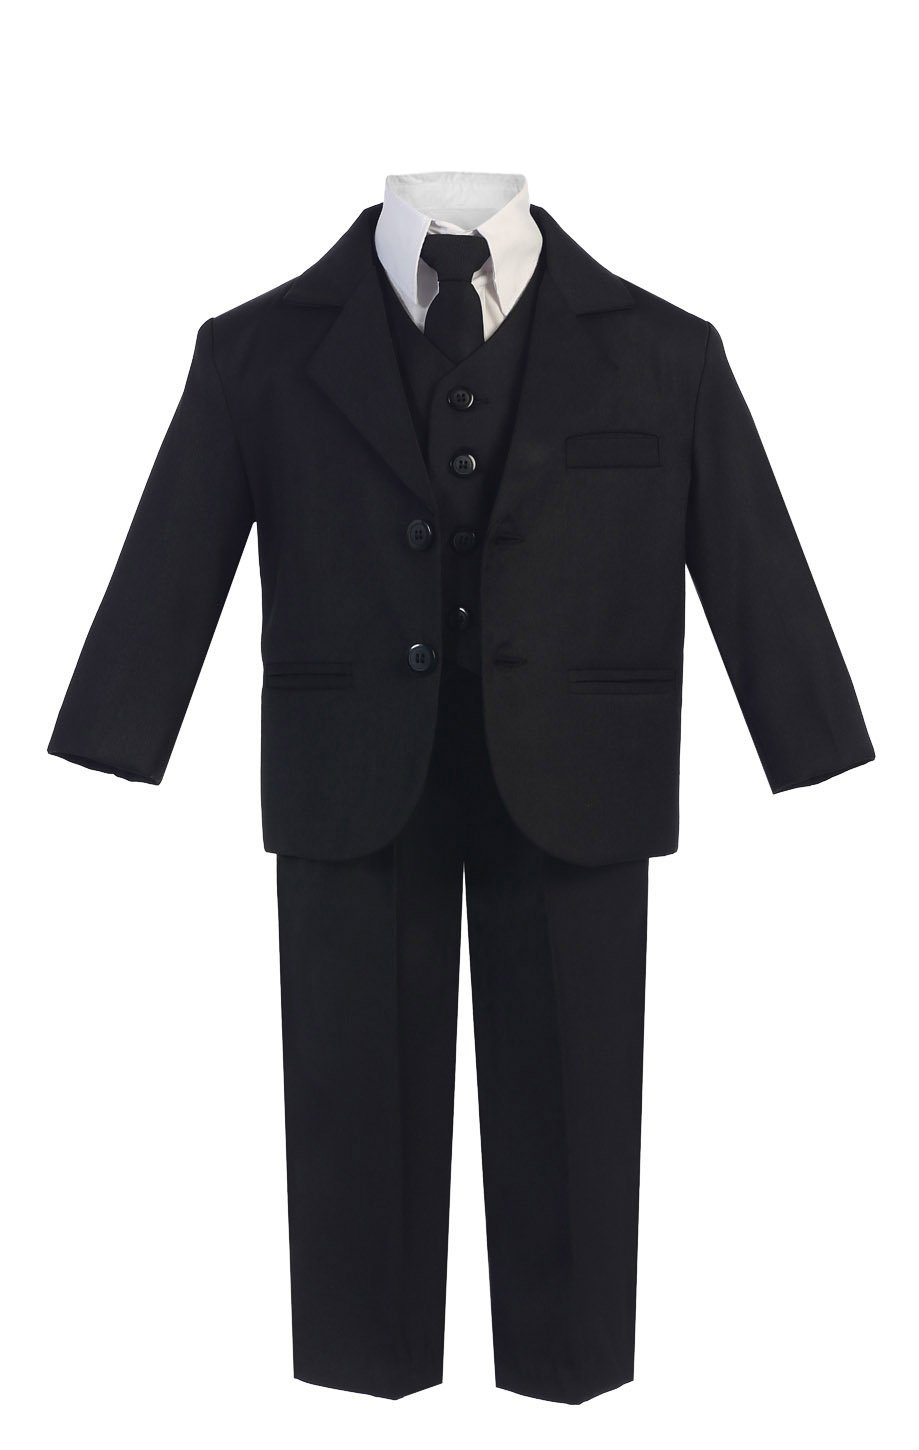 5 Piece Boy's Dress Suit with Shirt, Vest, and Tie (10H, Black)